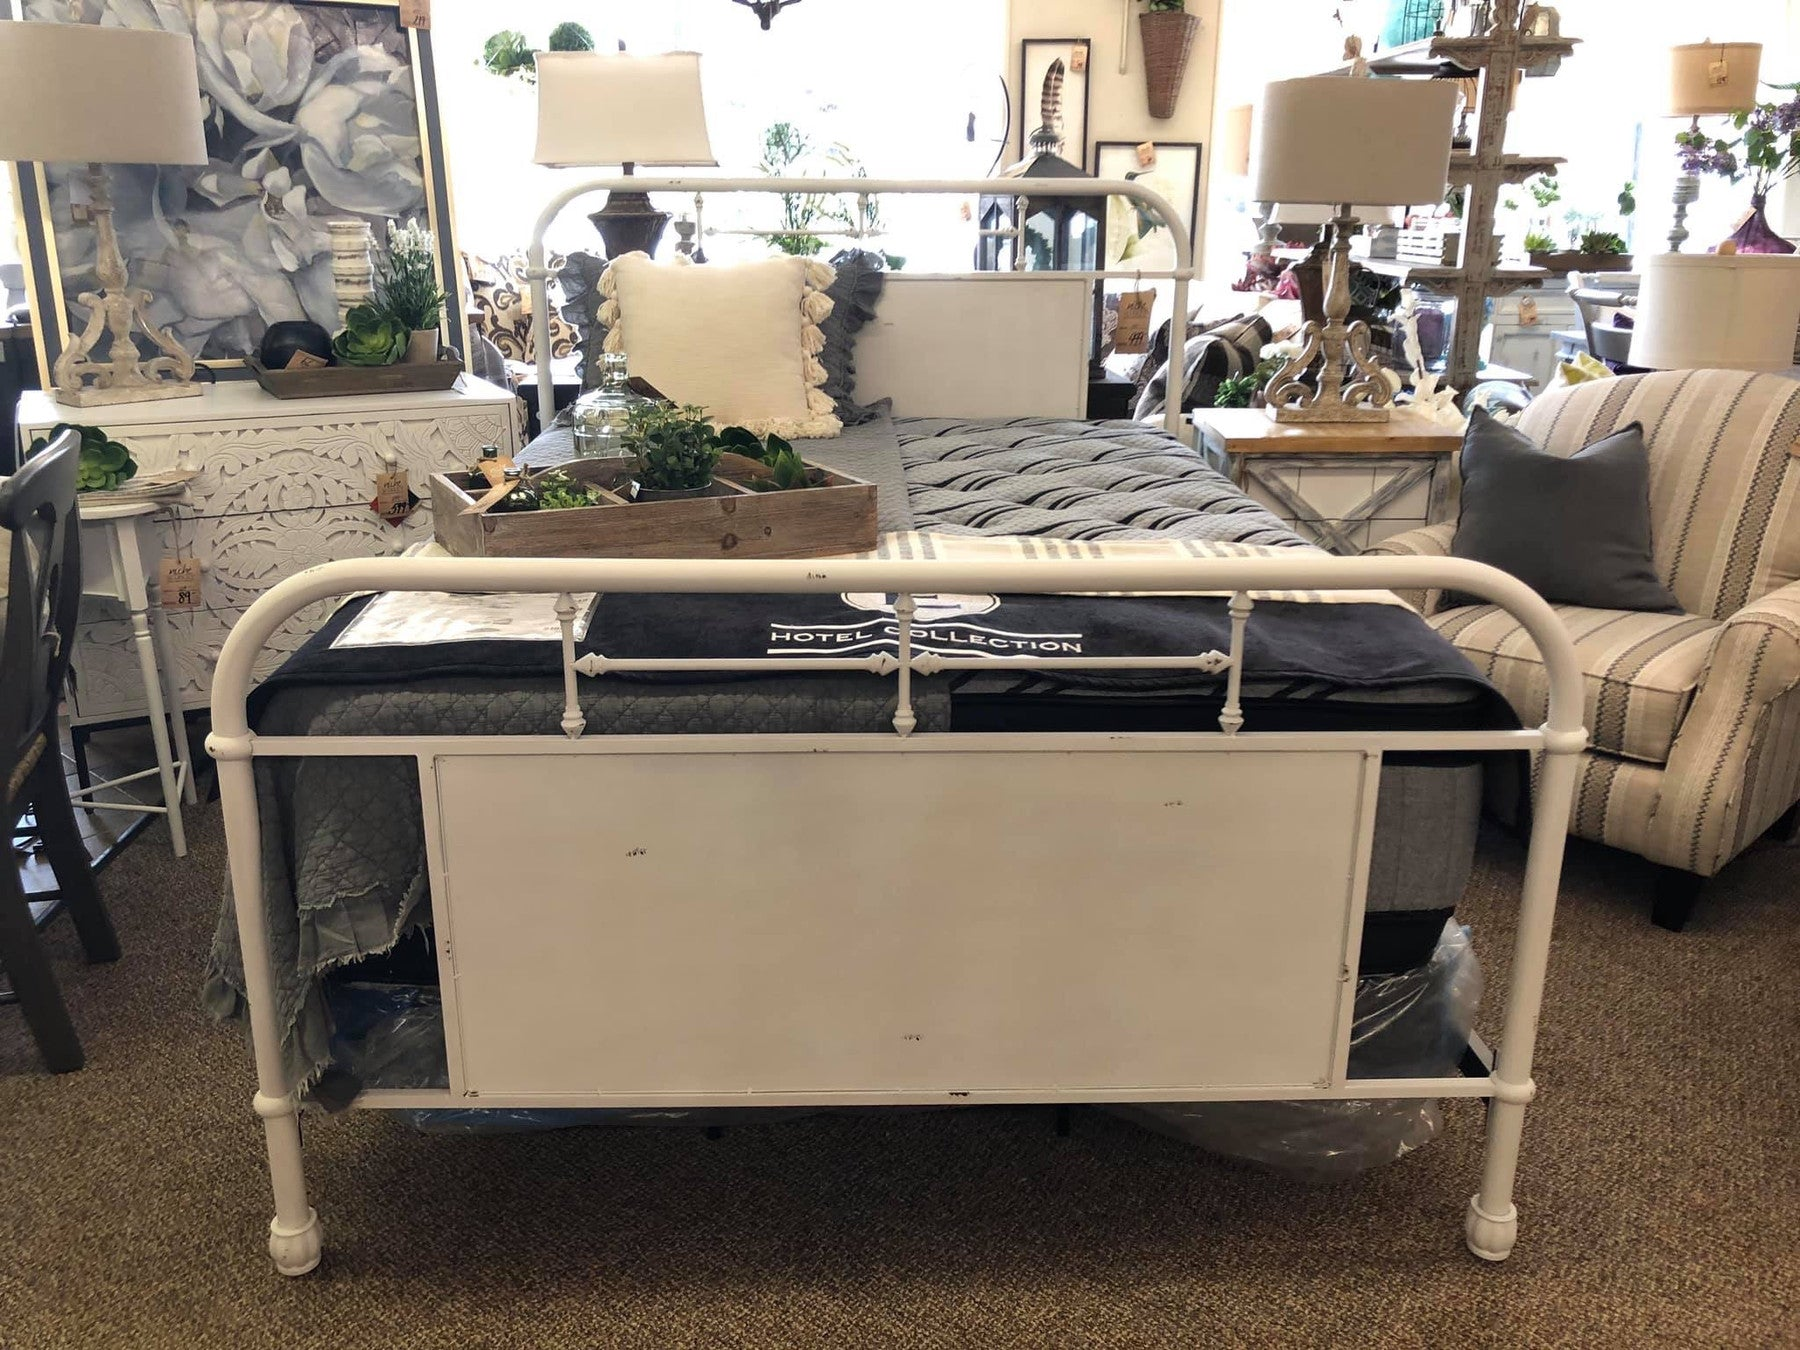 Furniture Stores In Ft Wayne In - Search